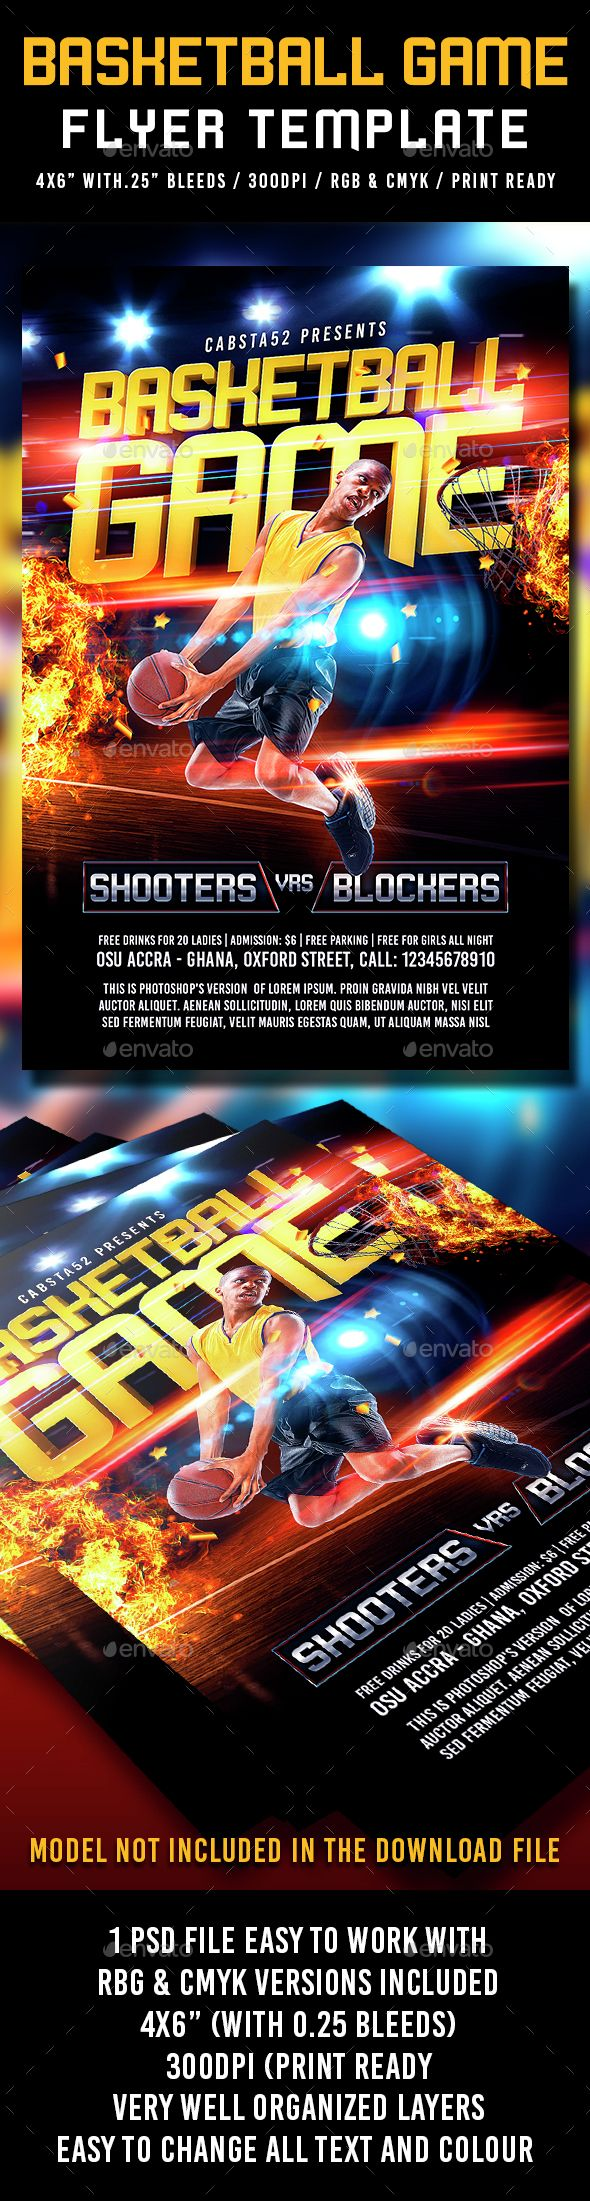 Basketball Game Flyer Template PSD. Download here: http://graphicriver.net/item/basketball-game-flyer-template/14842098?ref=ksioks